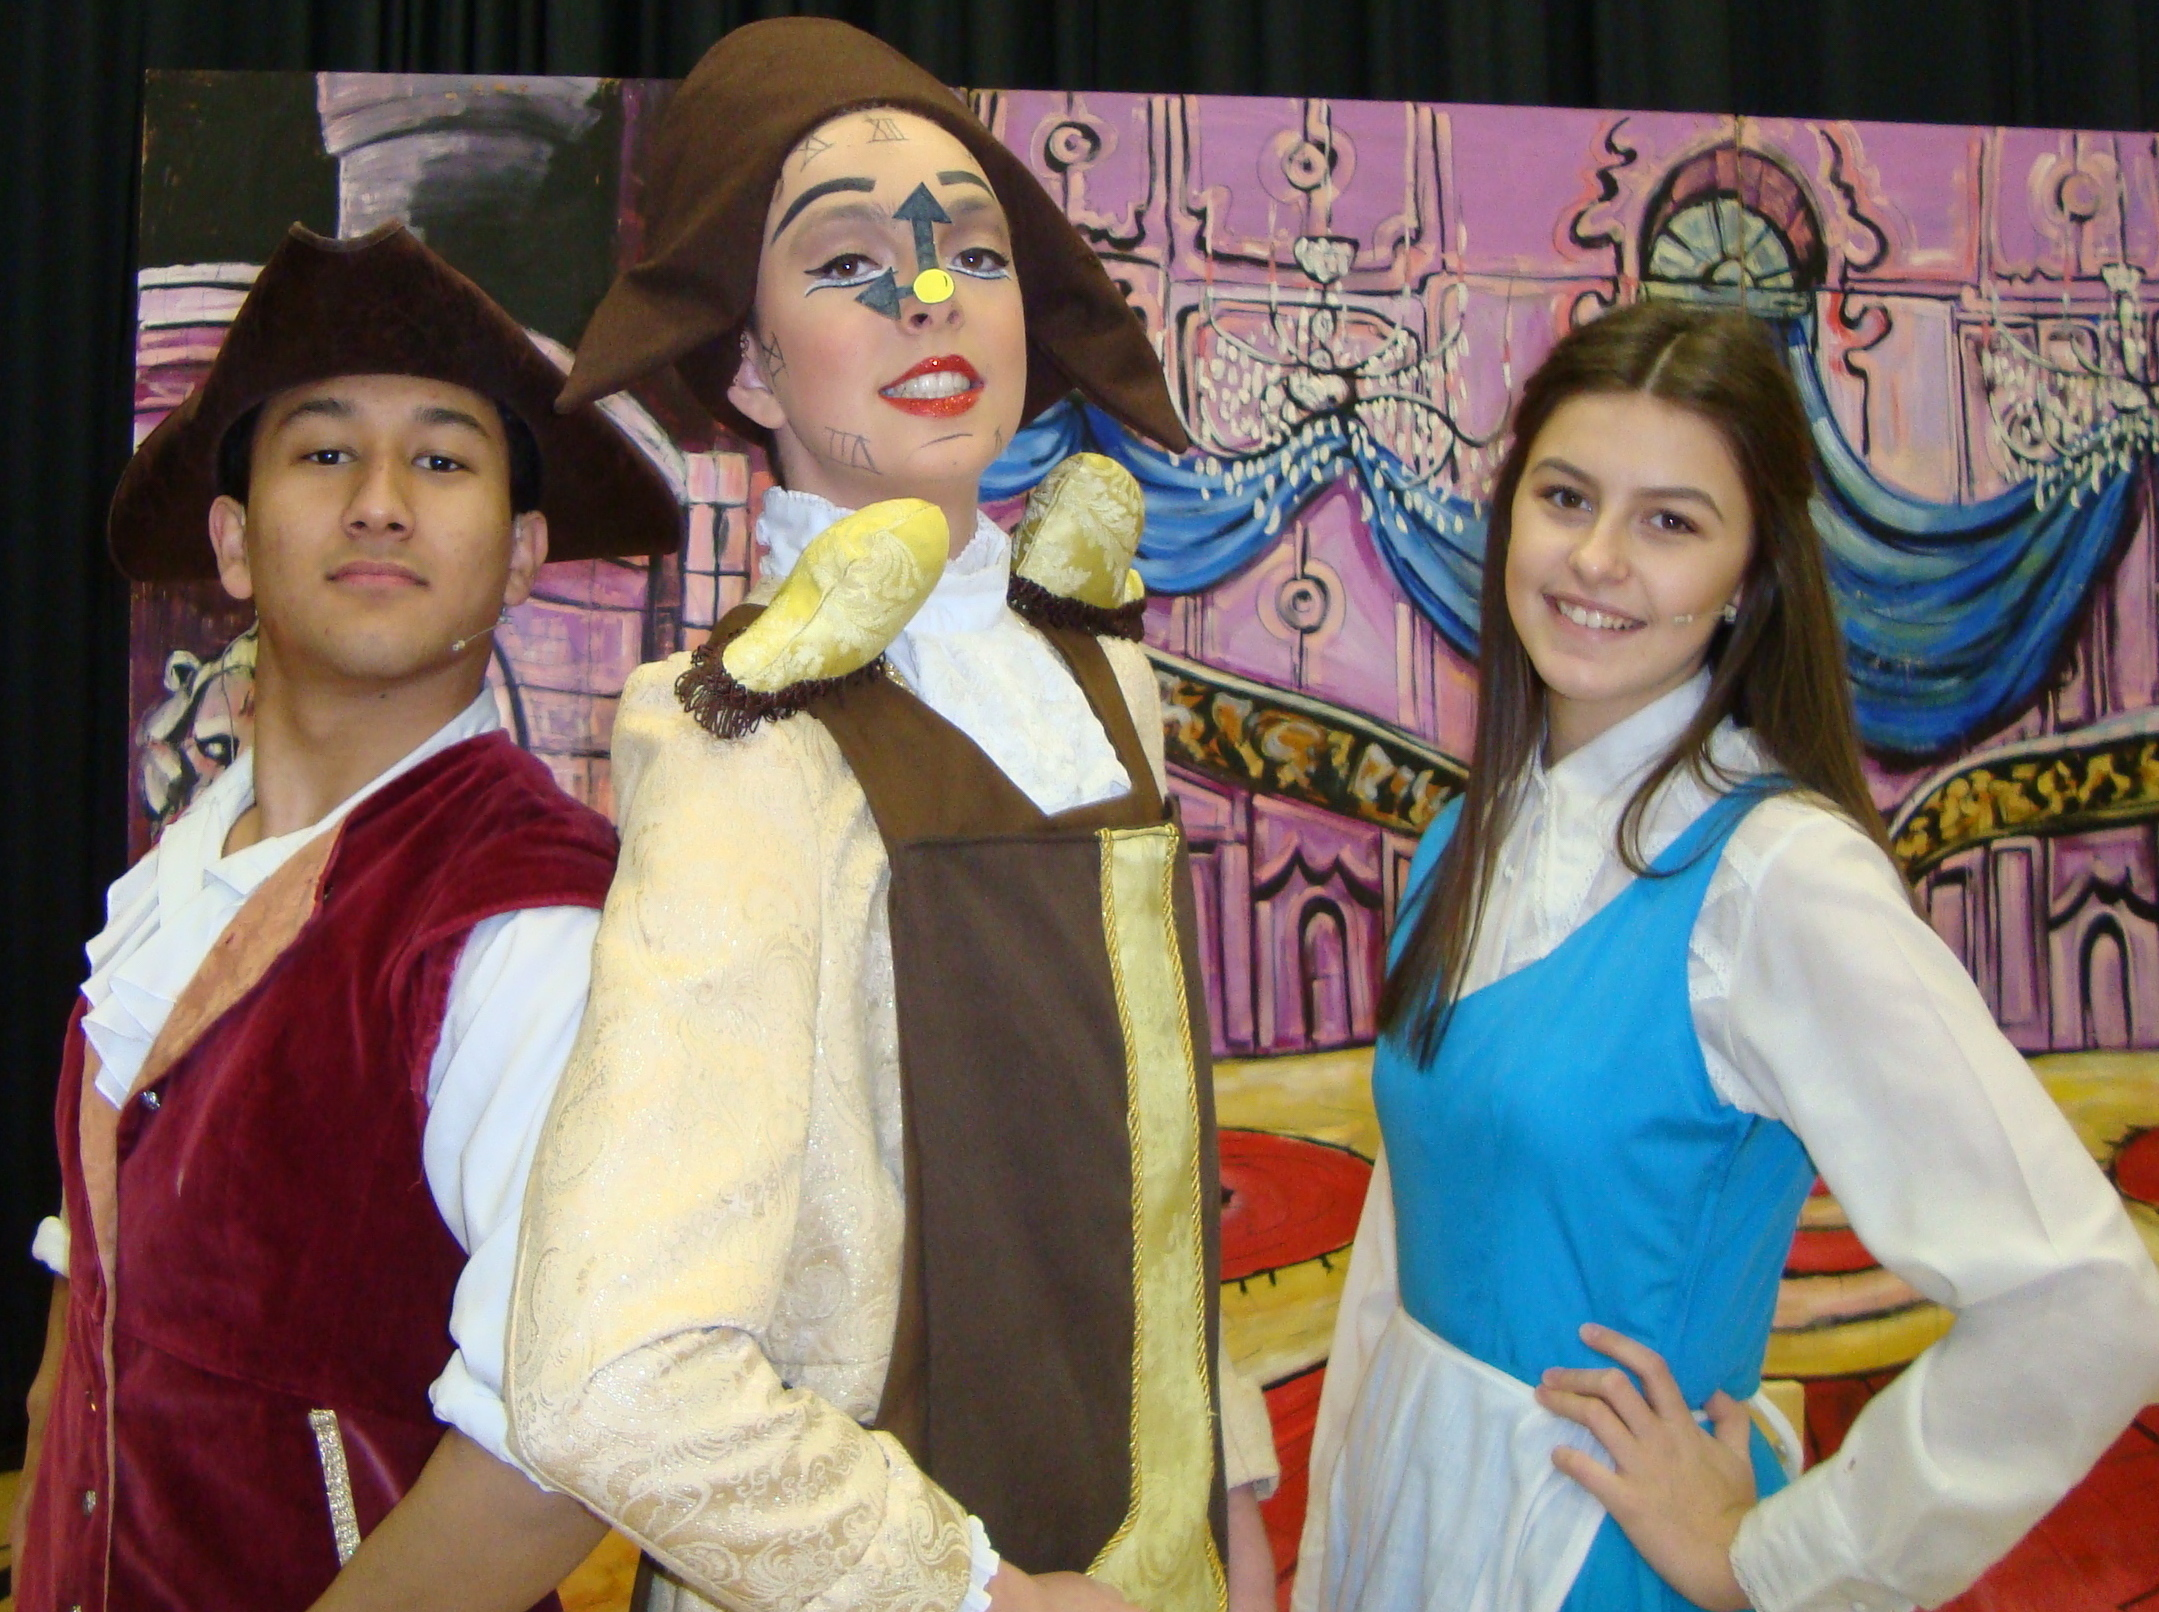 Gaston, Cogsworth and Belle in Beauty & the Beast